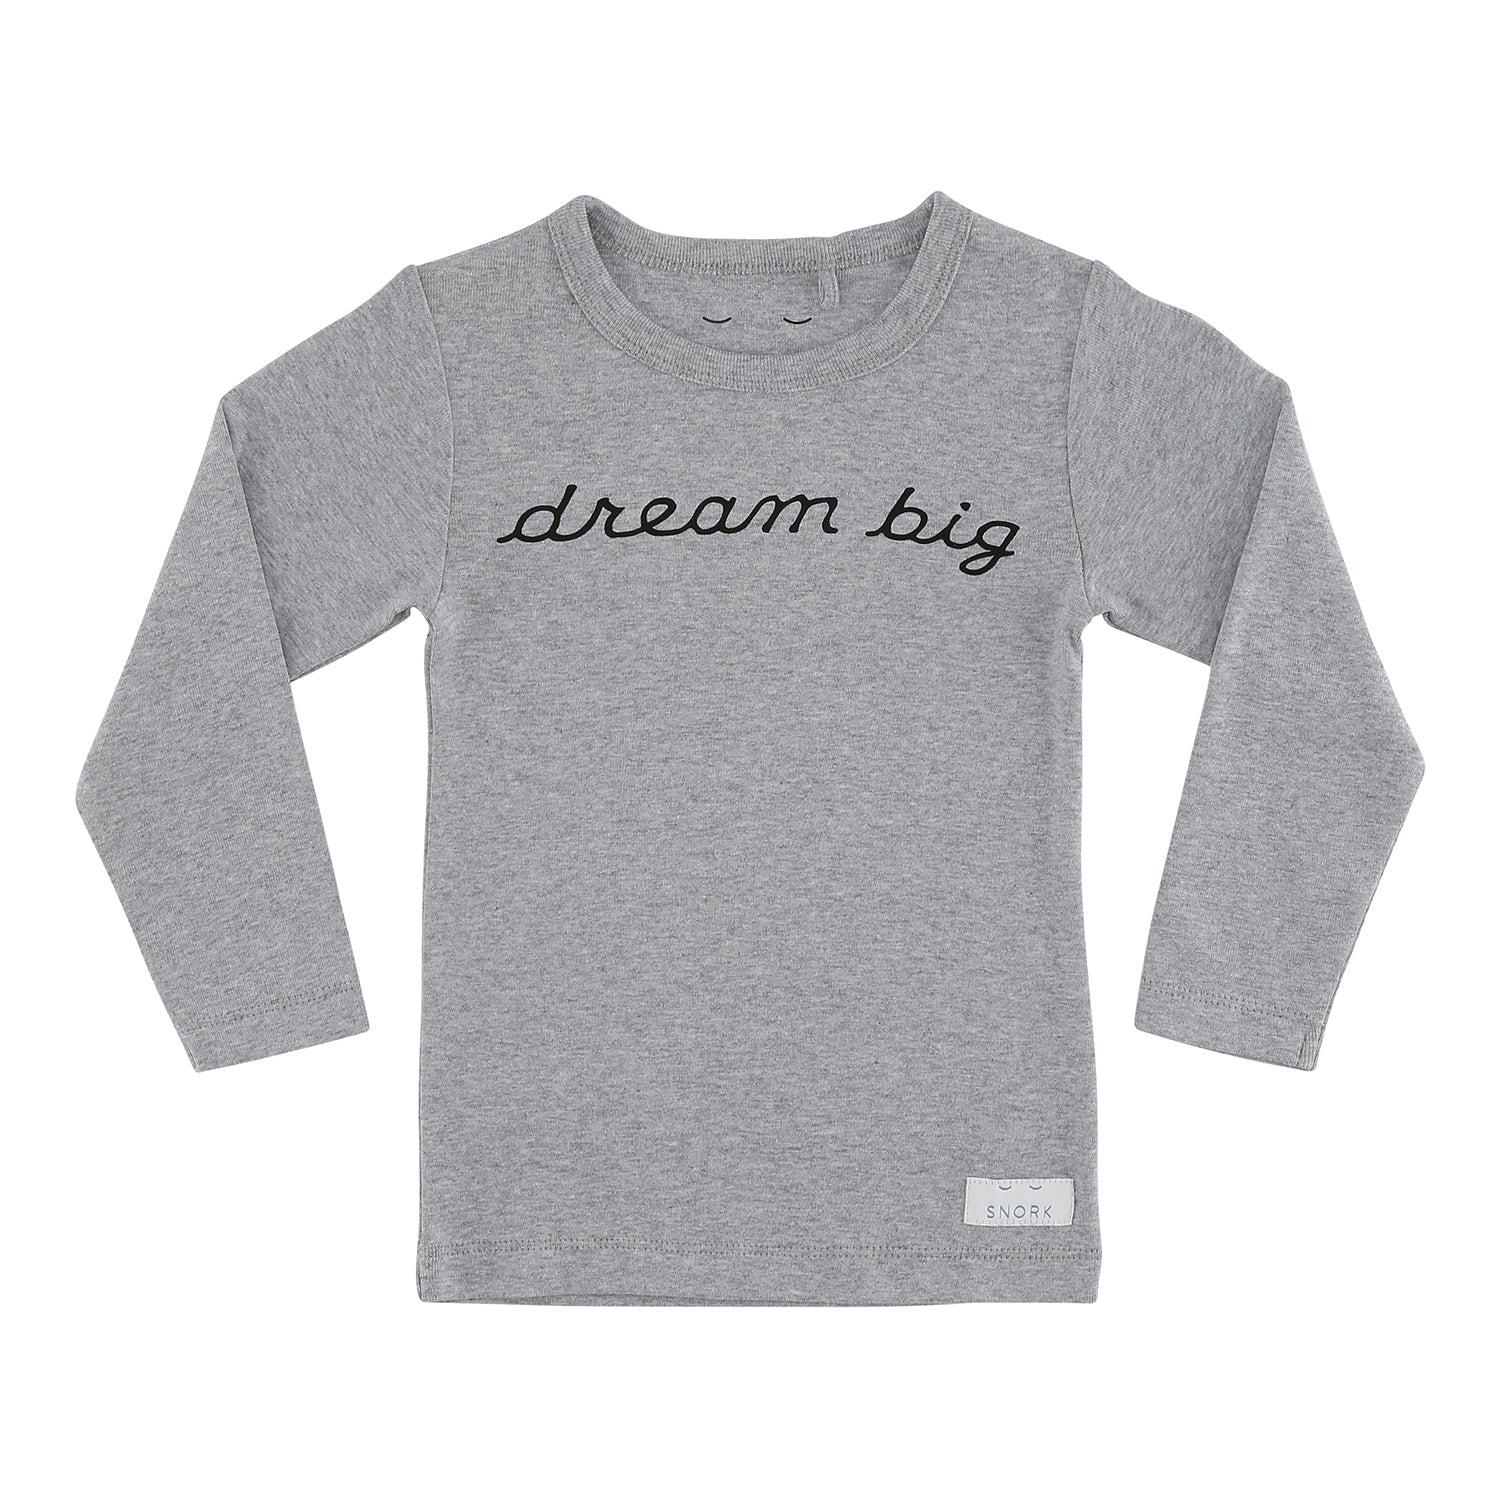 SNORK Copenhagen - Pyjamas, Dream Big - Grey Melange/White